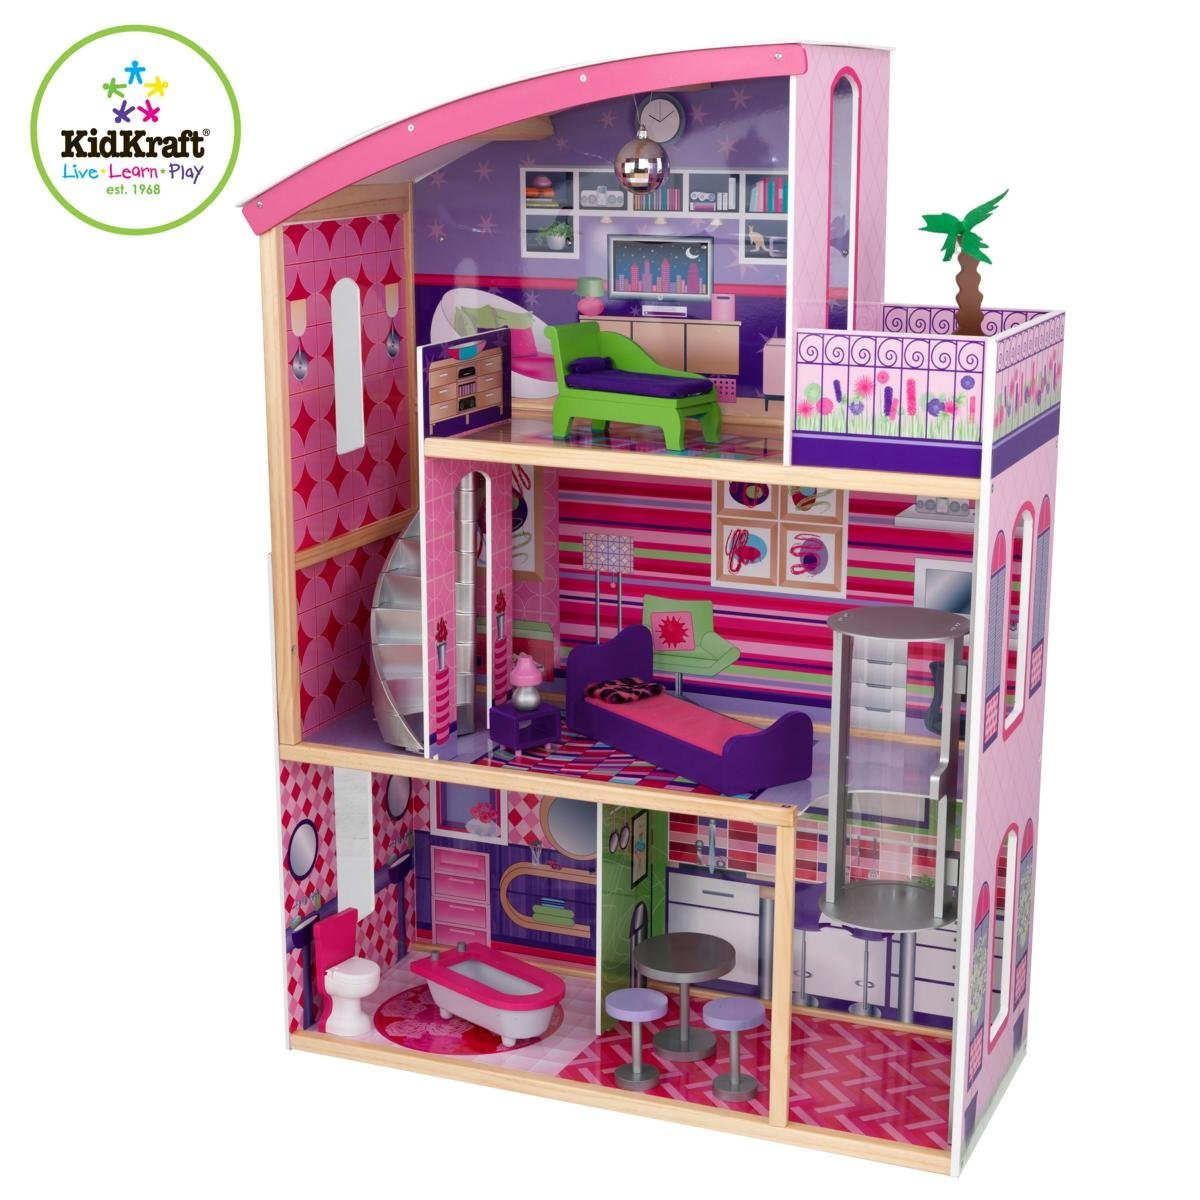 kidkraft super model wooden dollhouse with 11 pieces of